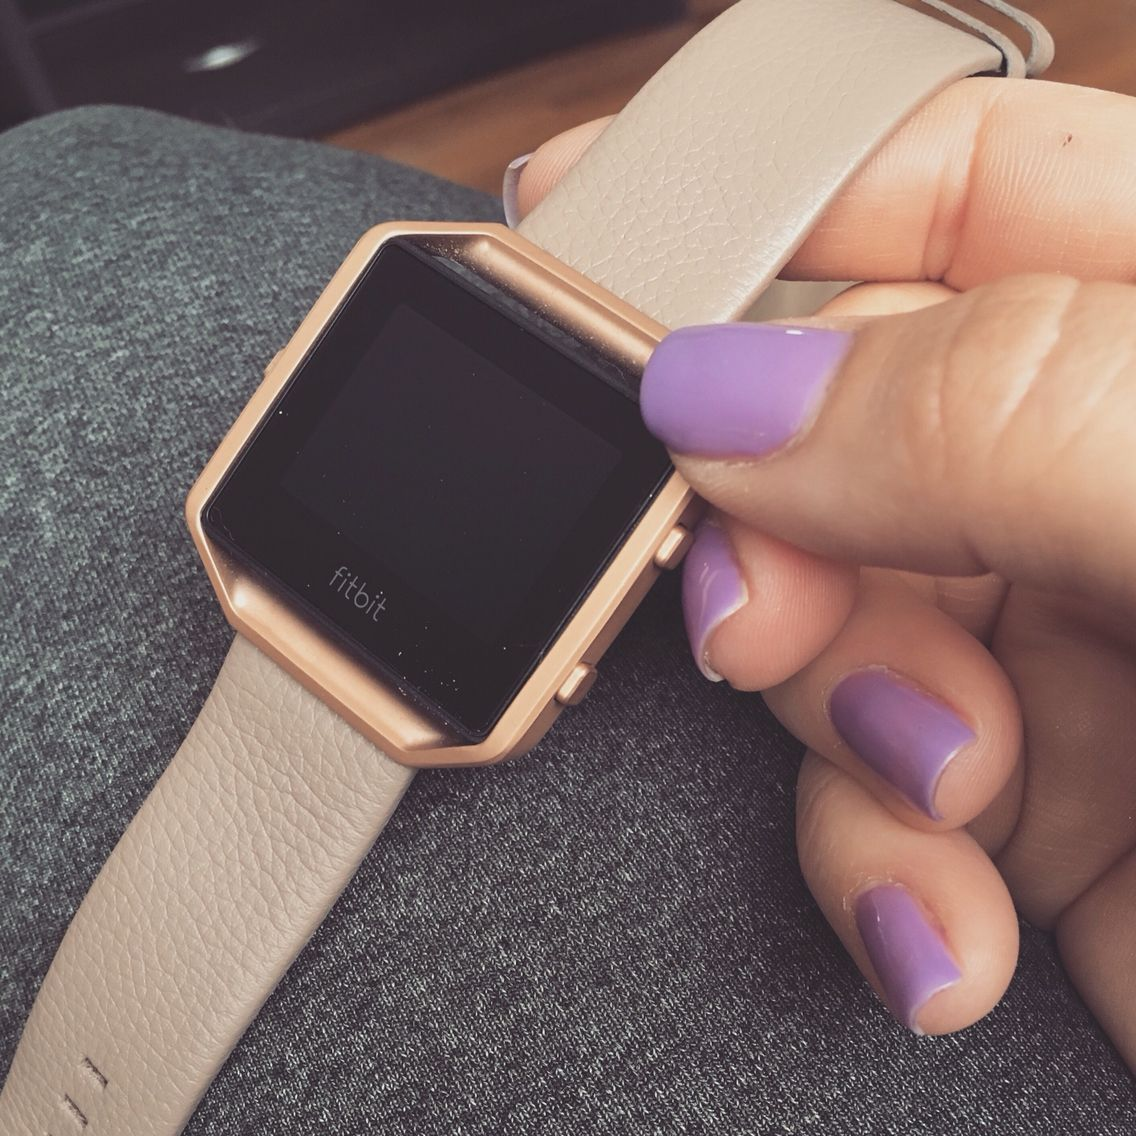 Matte Rose Gold Frame Paired With A Taupe Leather Band Dresses Up This Fitbit Blaze To Perfection Fitbit Rosegol Fitbit Bands Leather Band Fitbit Blaze Band